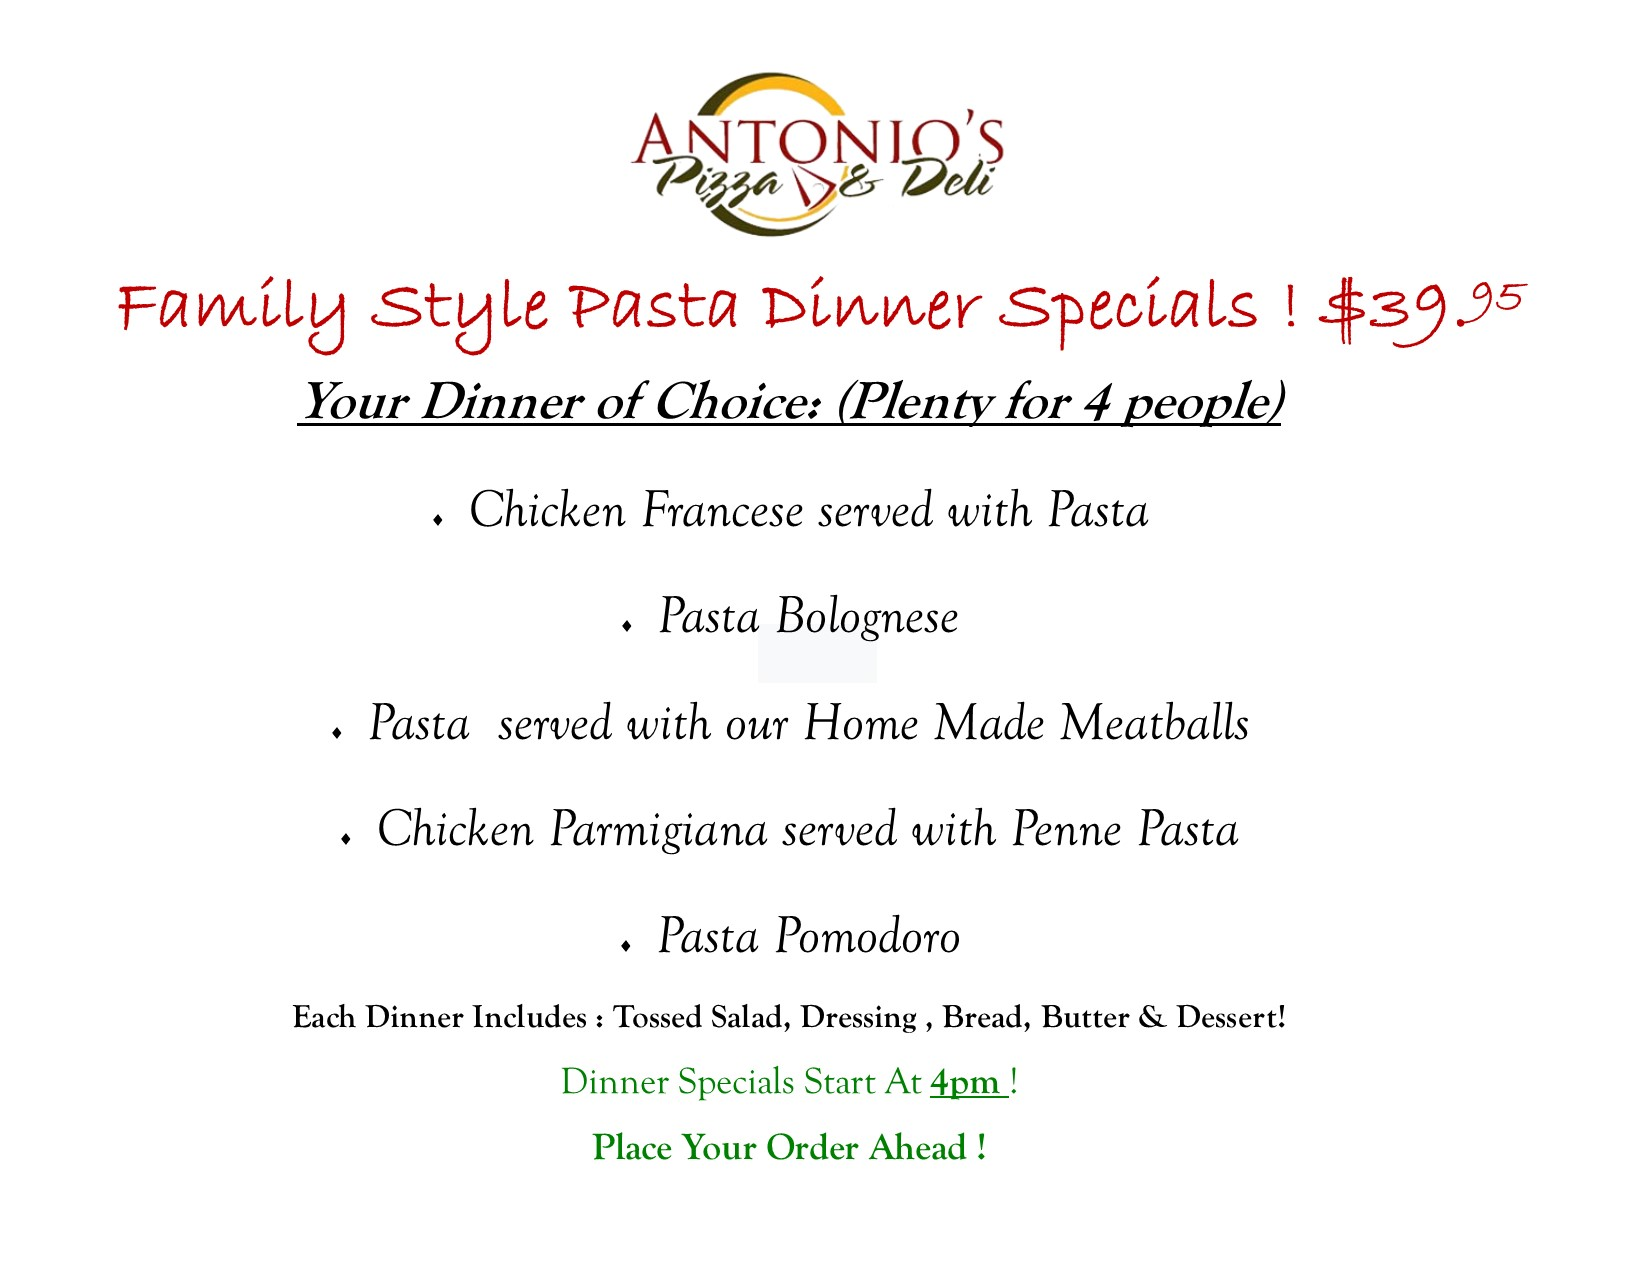 antonio's pizza and deli family style pasta dinner specials! $39.95 your dinner of choice: (plenty for 4 people) chicken francese served with pasta. pasta bolognese. pasta served with our home made meatballs. chicken parmigiana served with penne pasta. pasta pomodoro. each dinner includes: tossed salad, dressing, bread, butter & dessert! dinner specials start at 4pm! place your order ahead!